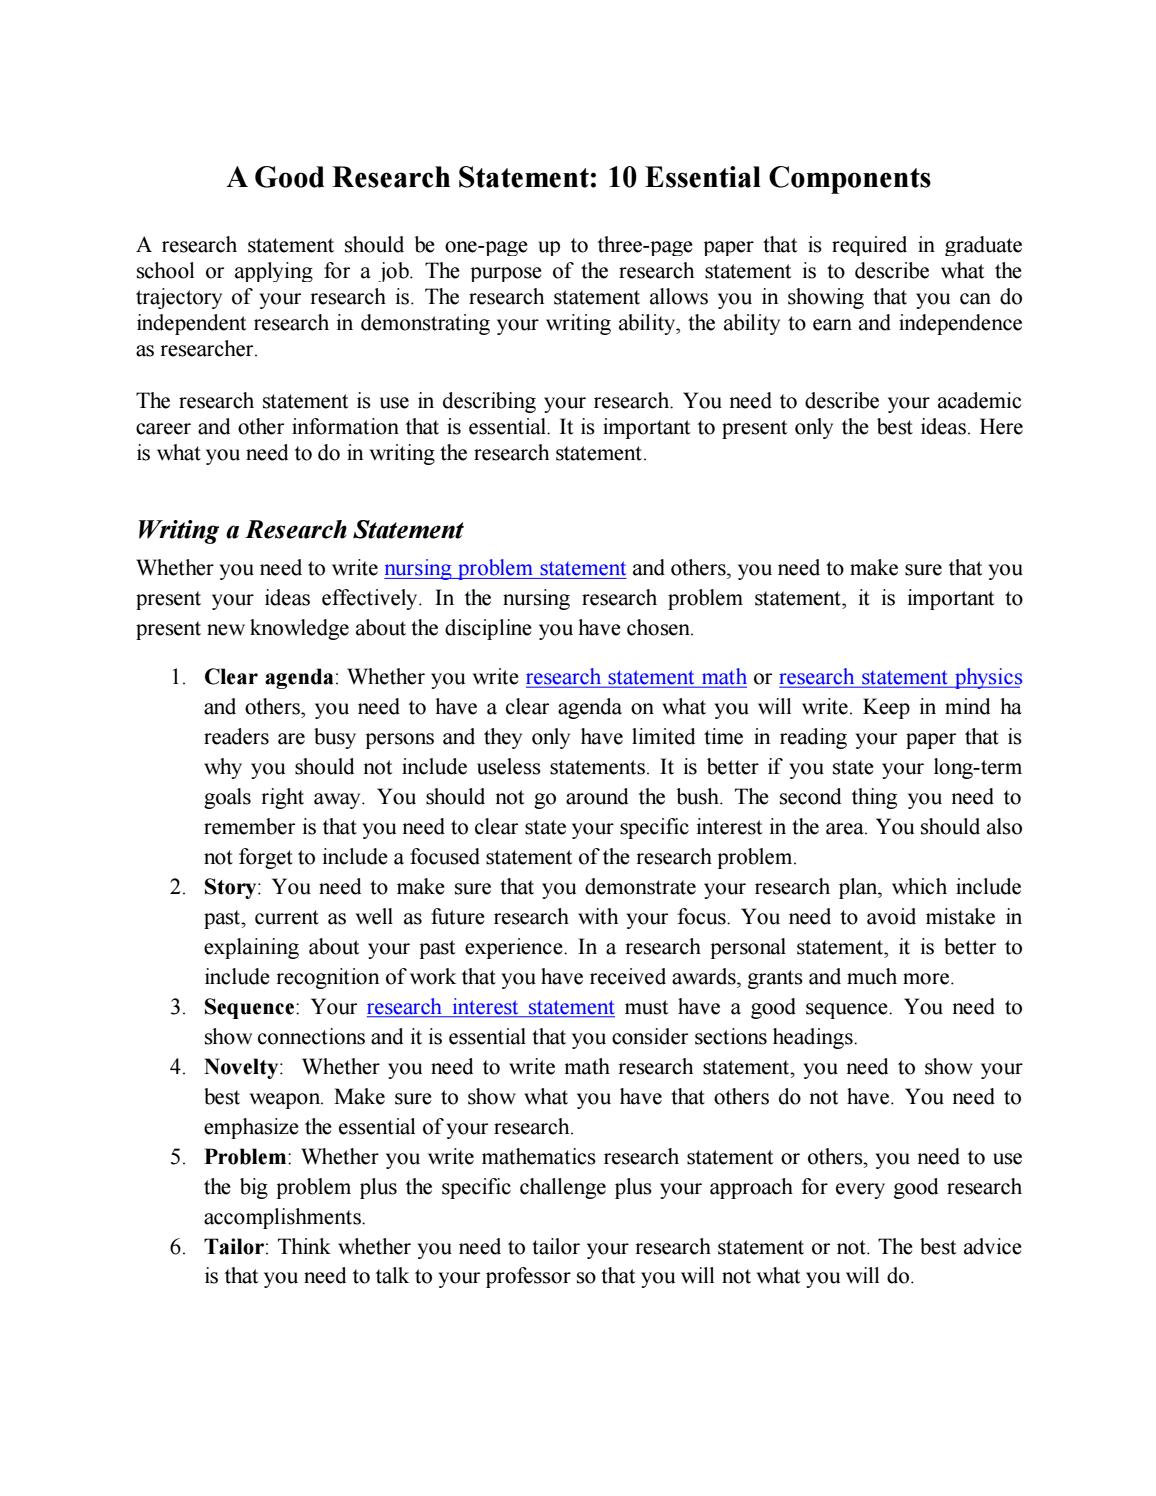 Research Statement 10 Ingredients To Success By Research Statement